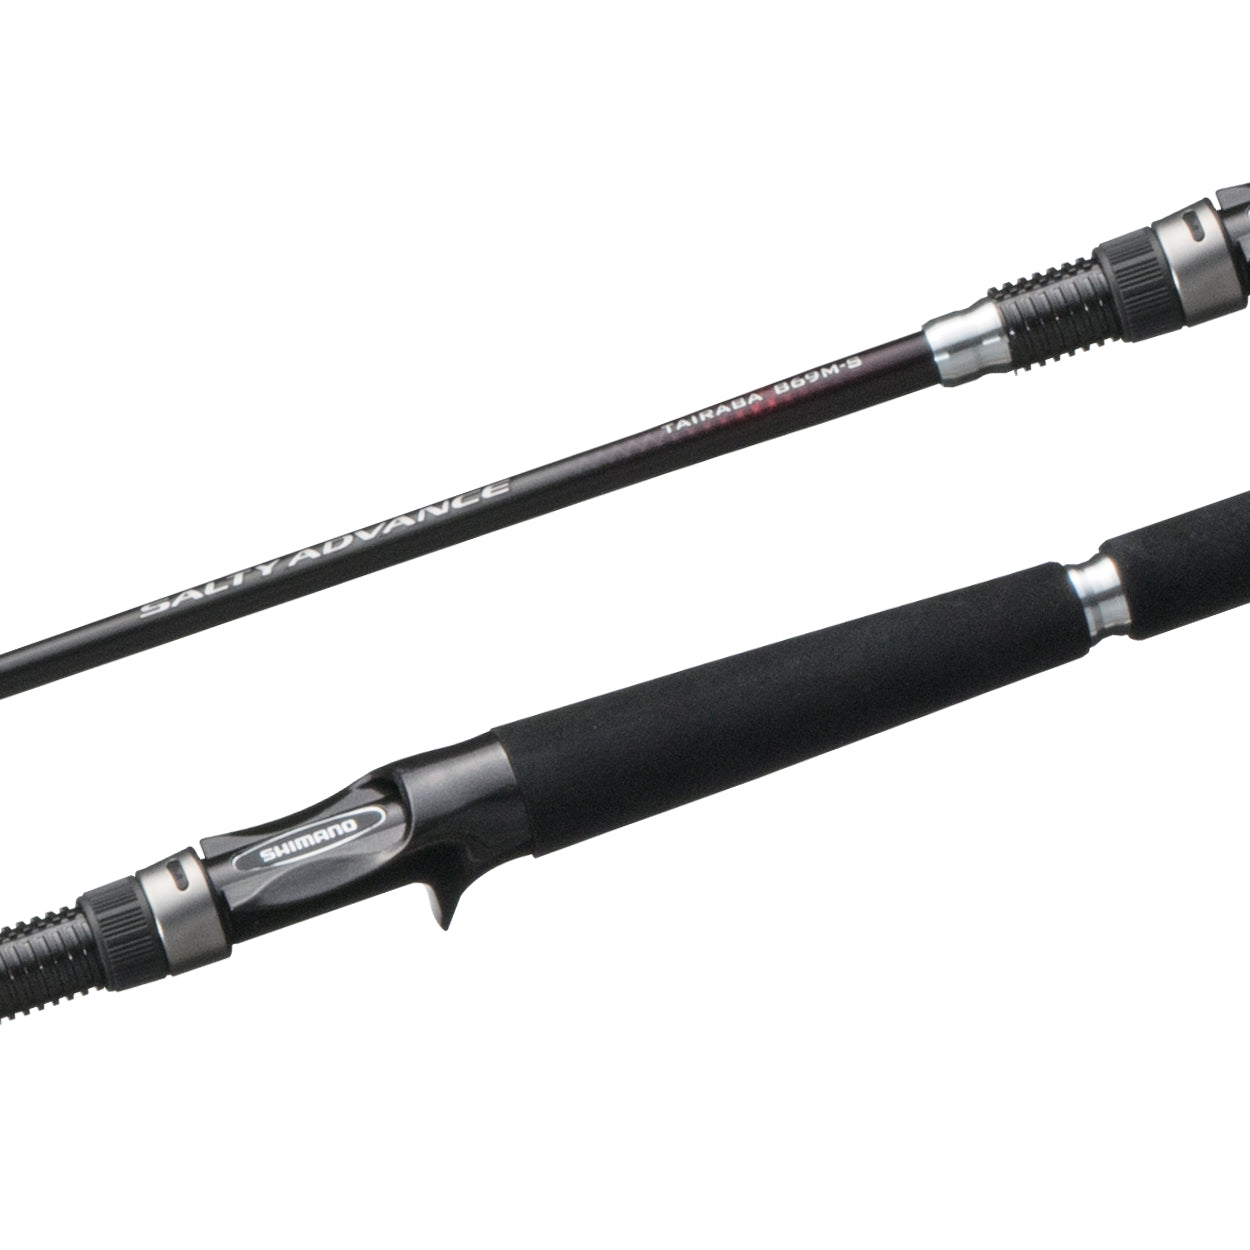 Shimano Salty Advance Spin Rod